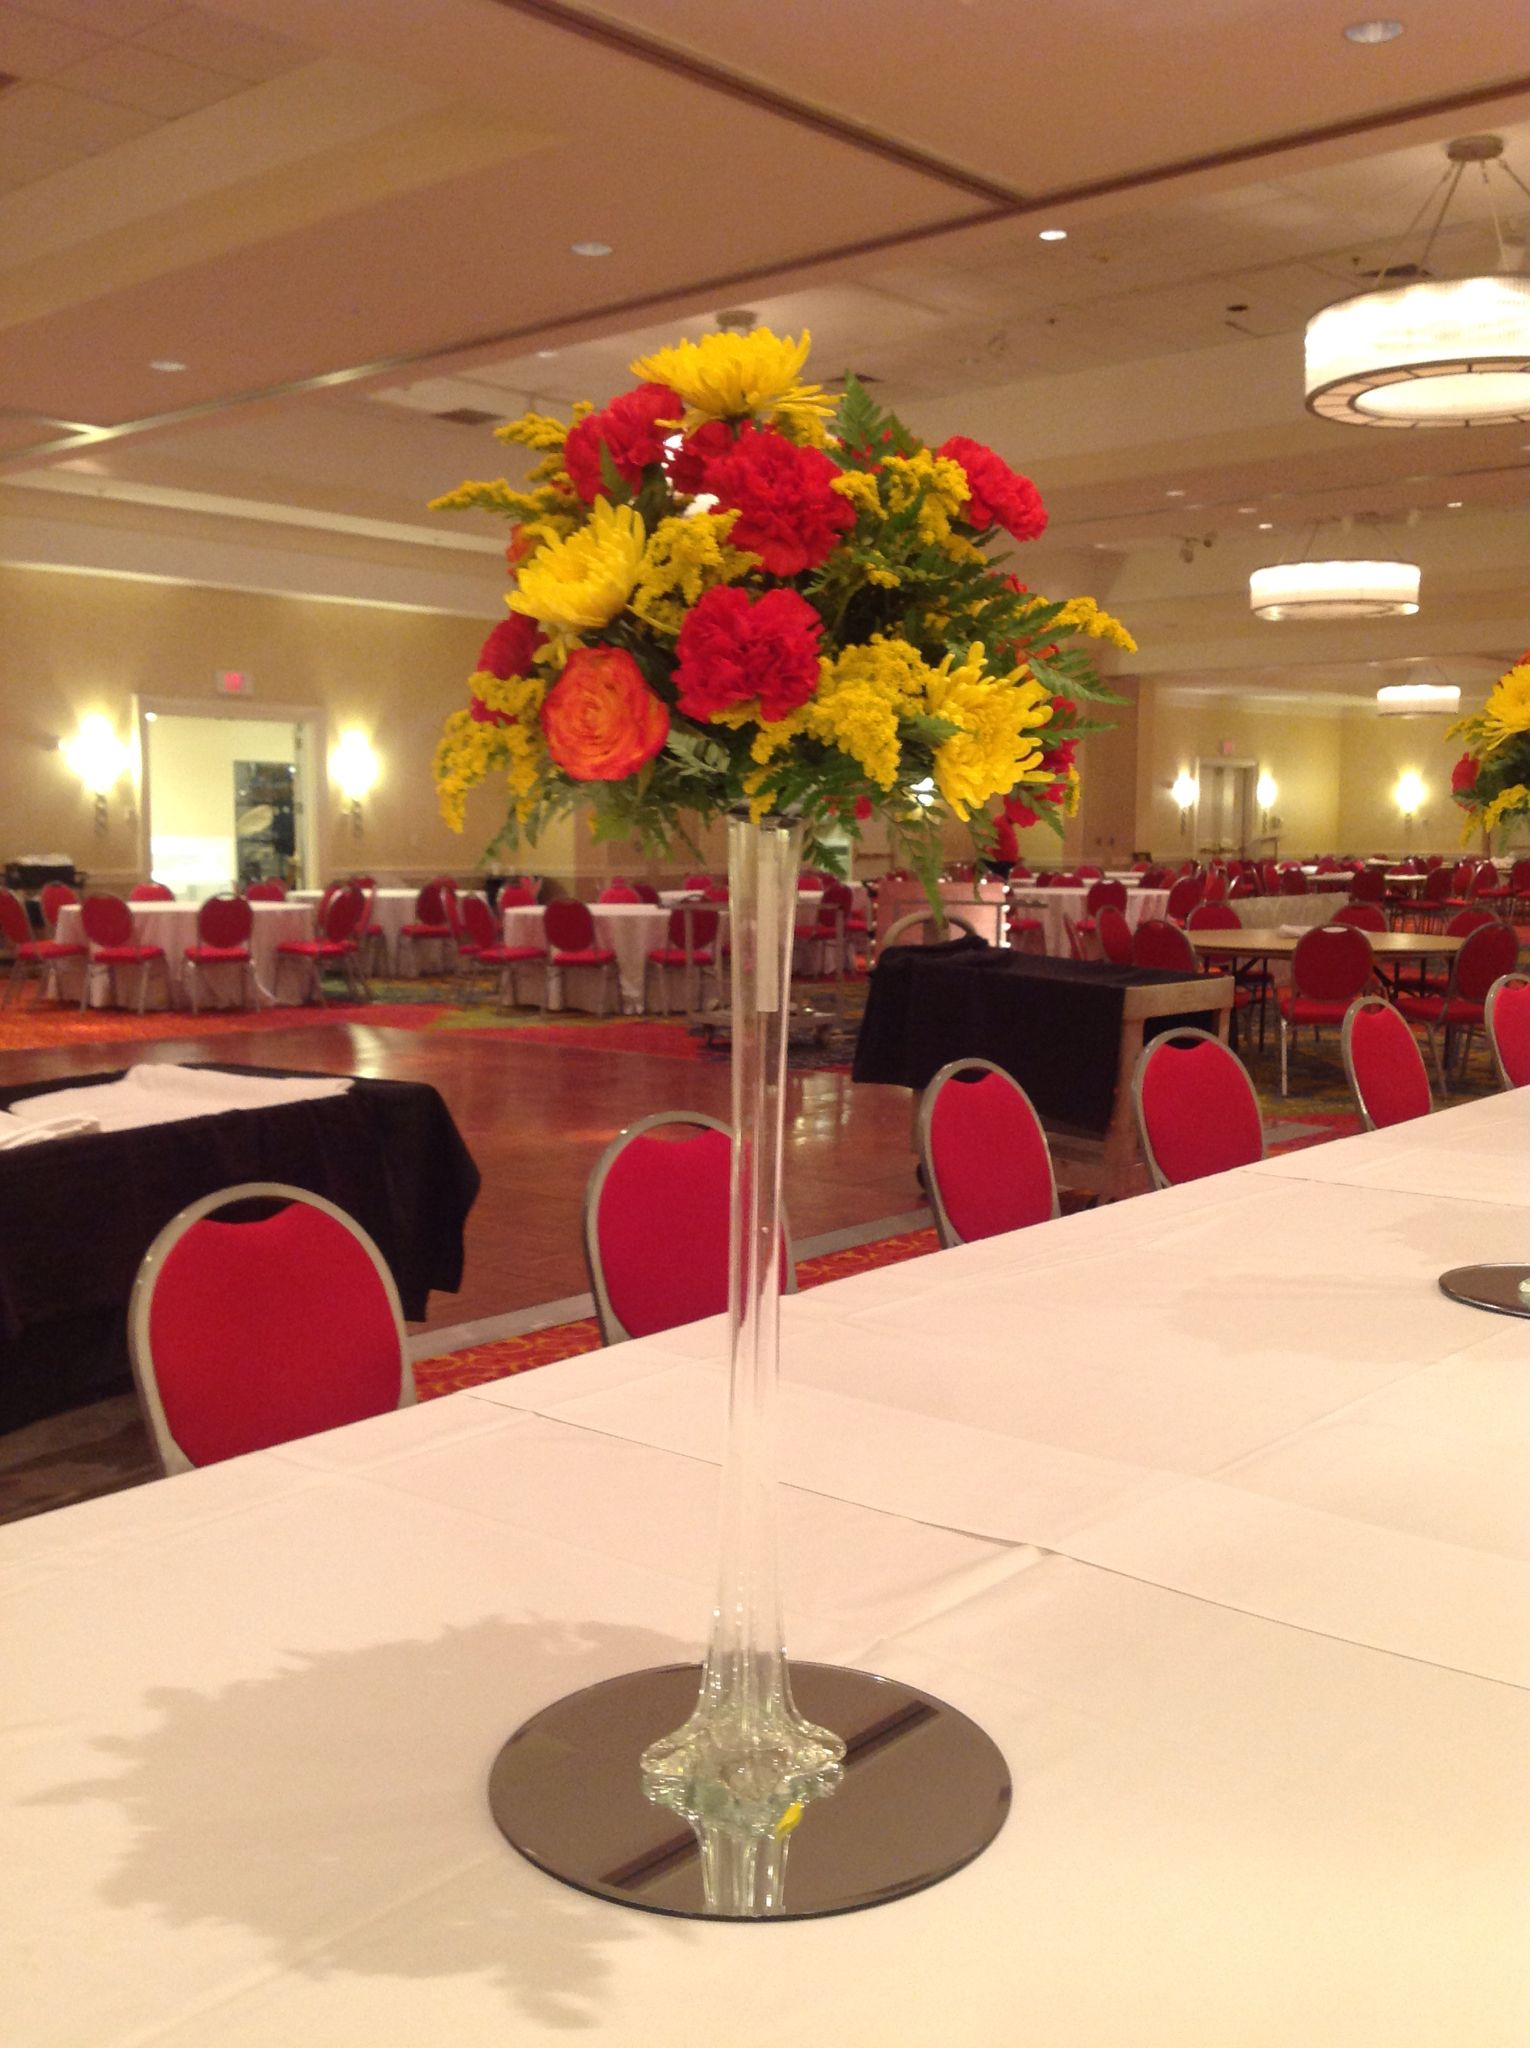 A Beautiful Orange Yellow And Red Centerpiece Centerpiece Red Orange Yellow Red Centerpieces Centerpieces Table Decorations